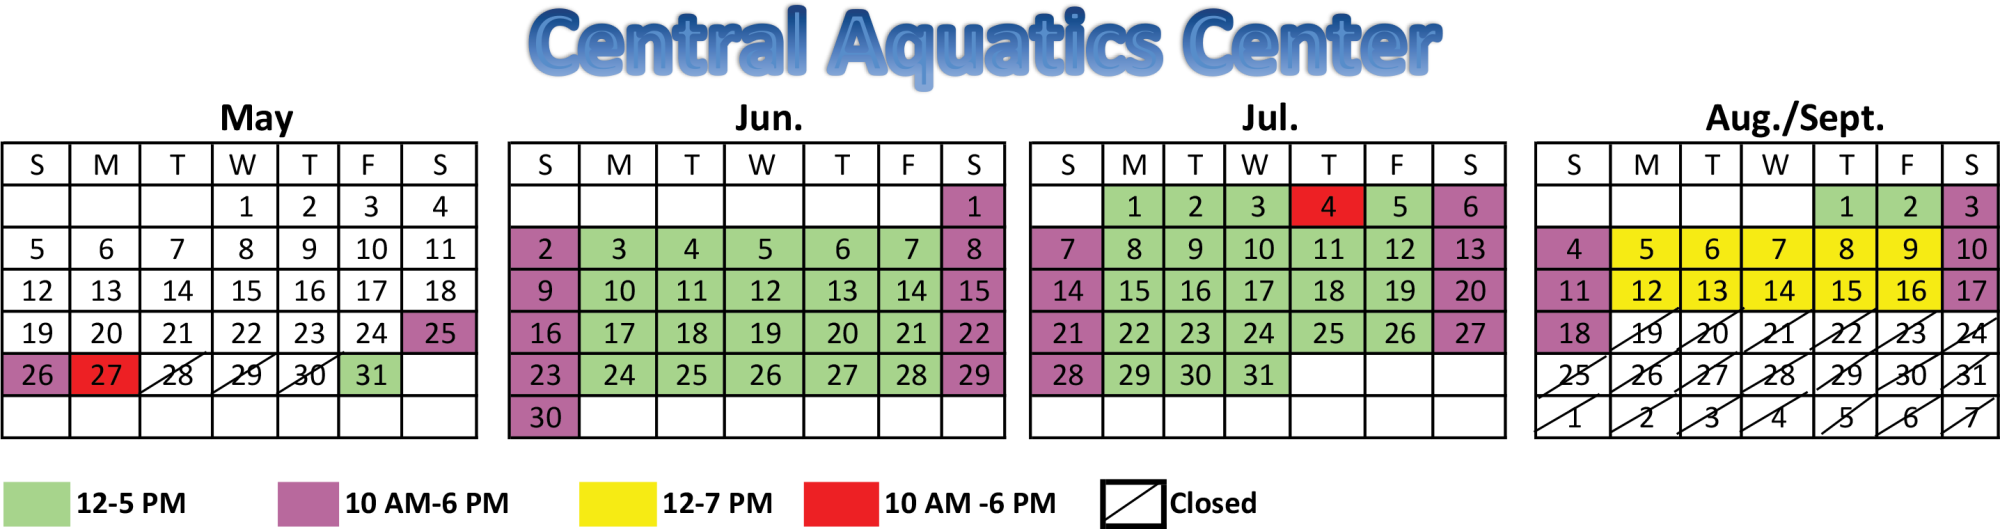 Central aquatics center 2019 schedule image